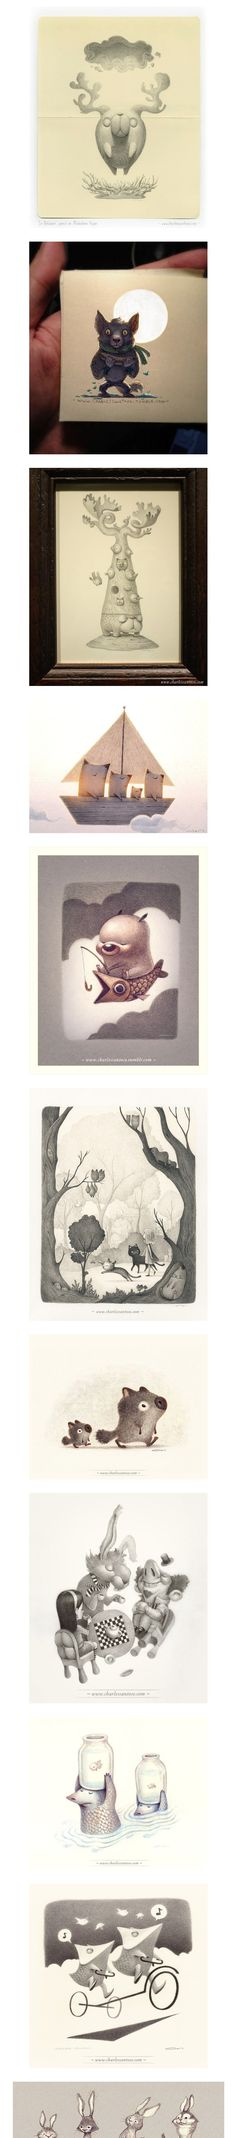 Beautiful Illustrations by Charles Santoso